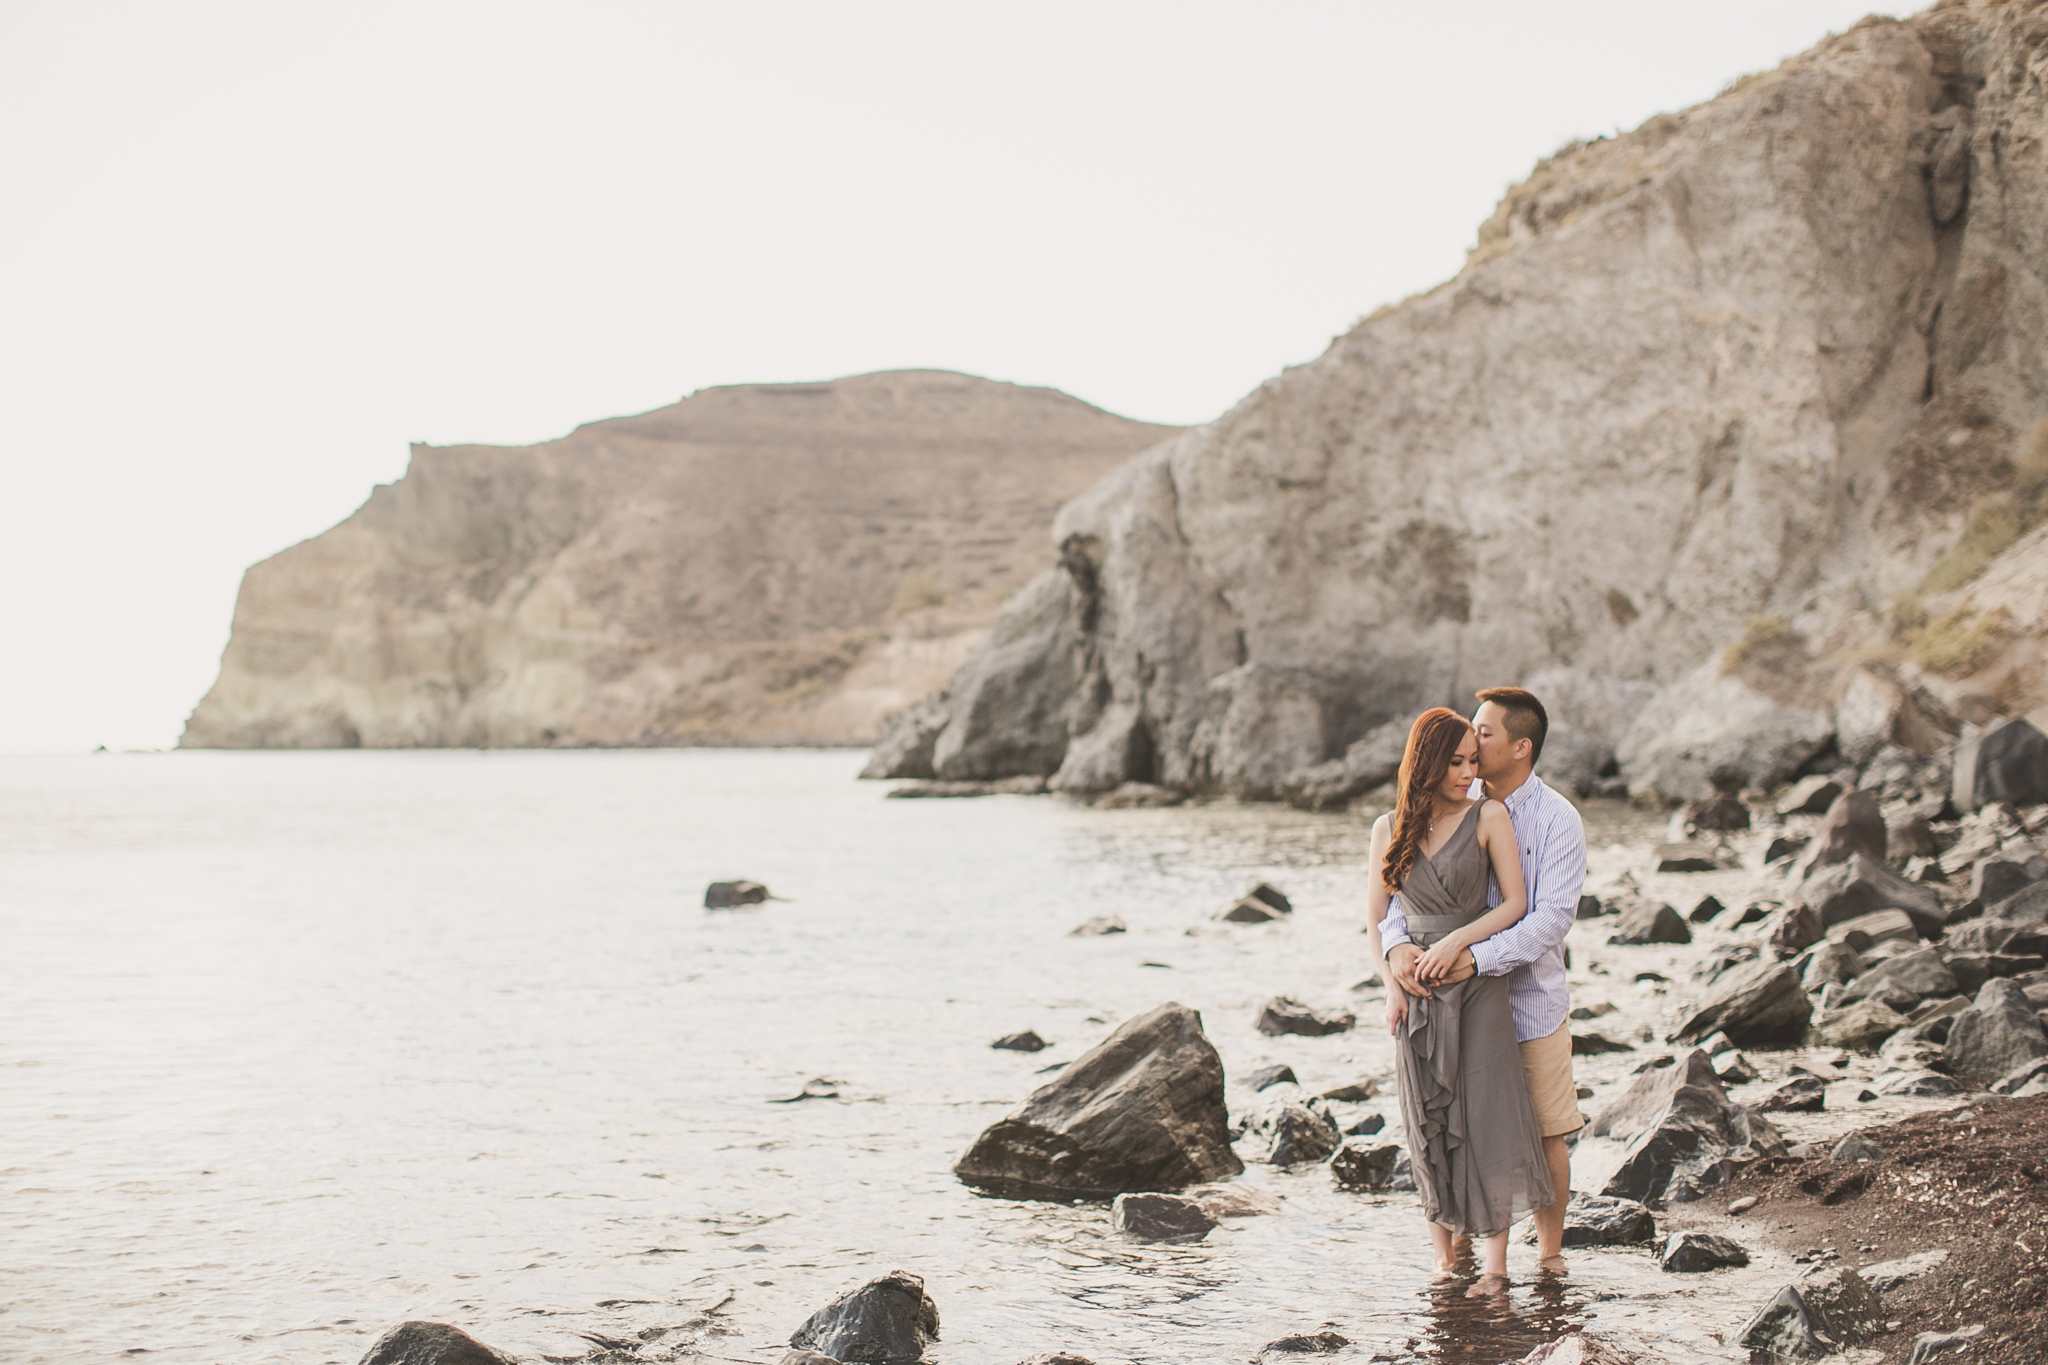 Pre wedding photography on the beach at Santorini during a destination engagement shoot